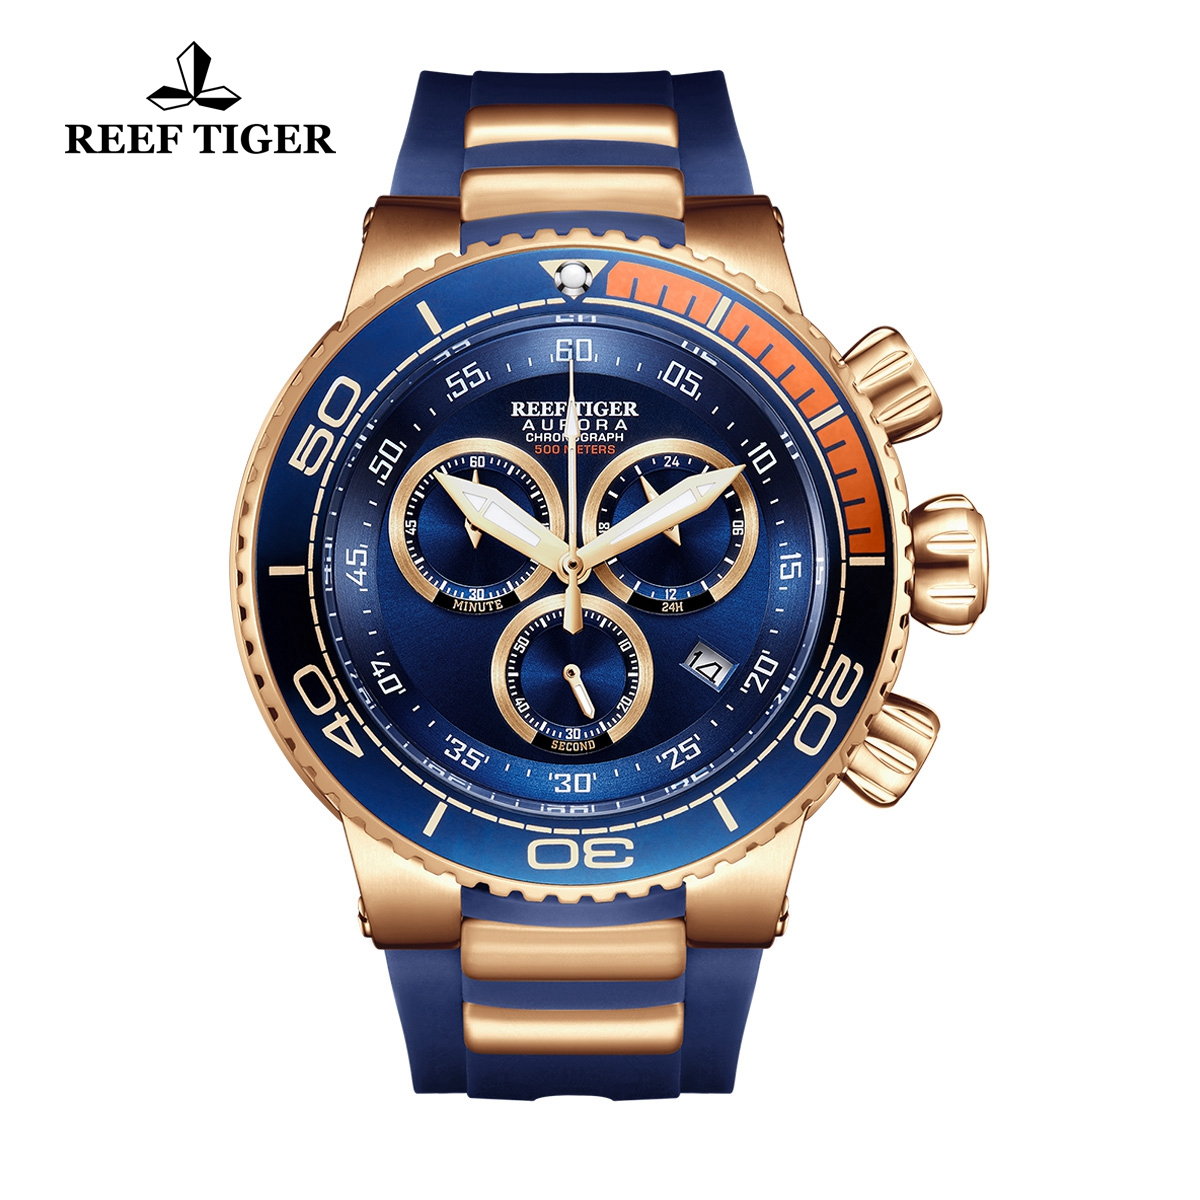 Reef Tiger Aurora Grand Ocean Rose Gold Fashion Watch Rubber Strap Blue Dial Chronograph Quartz Watch RGA3168-PLL